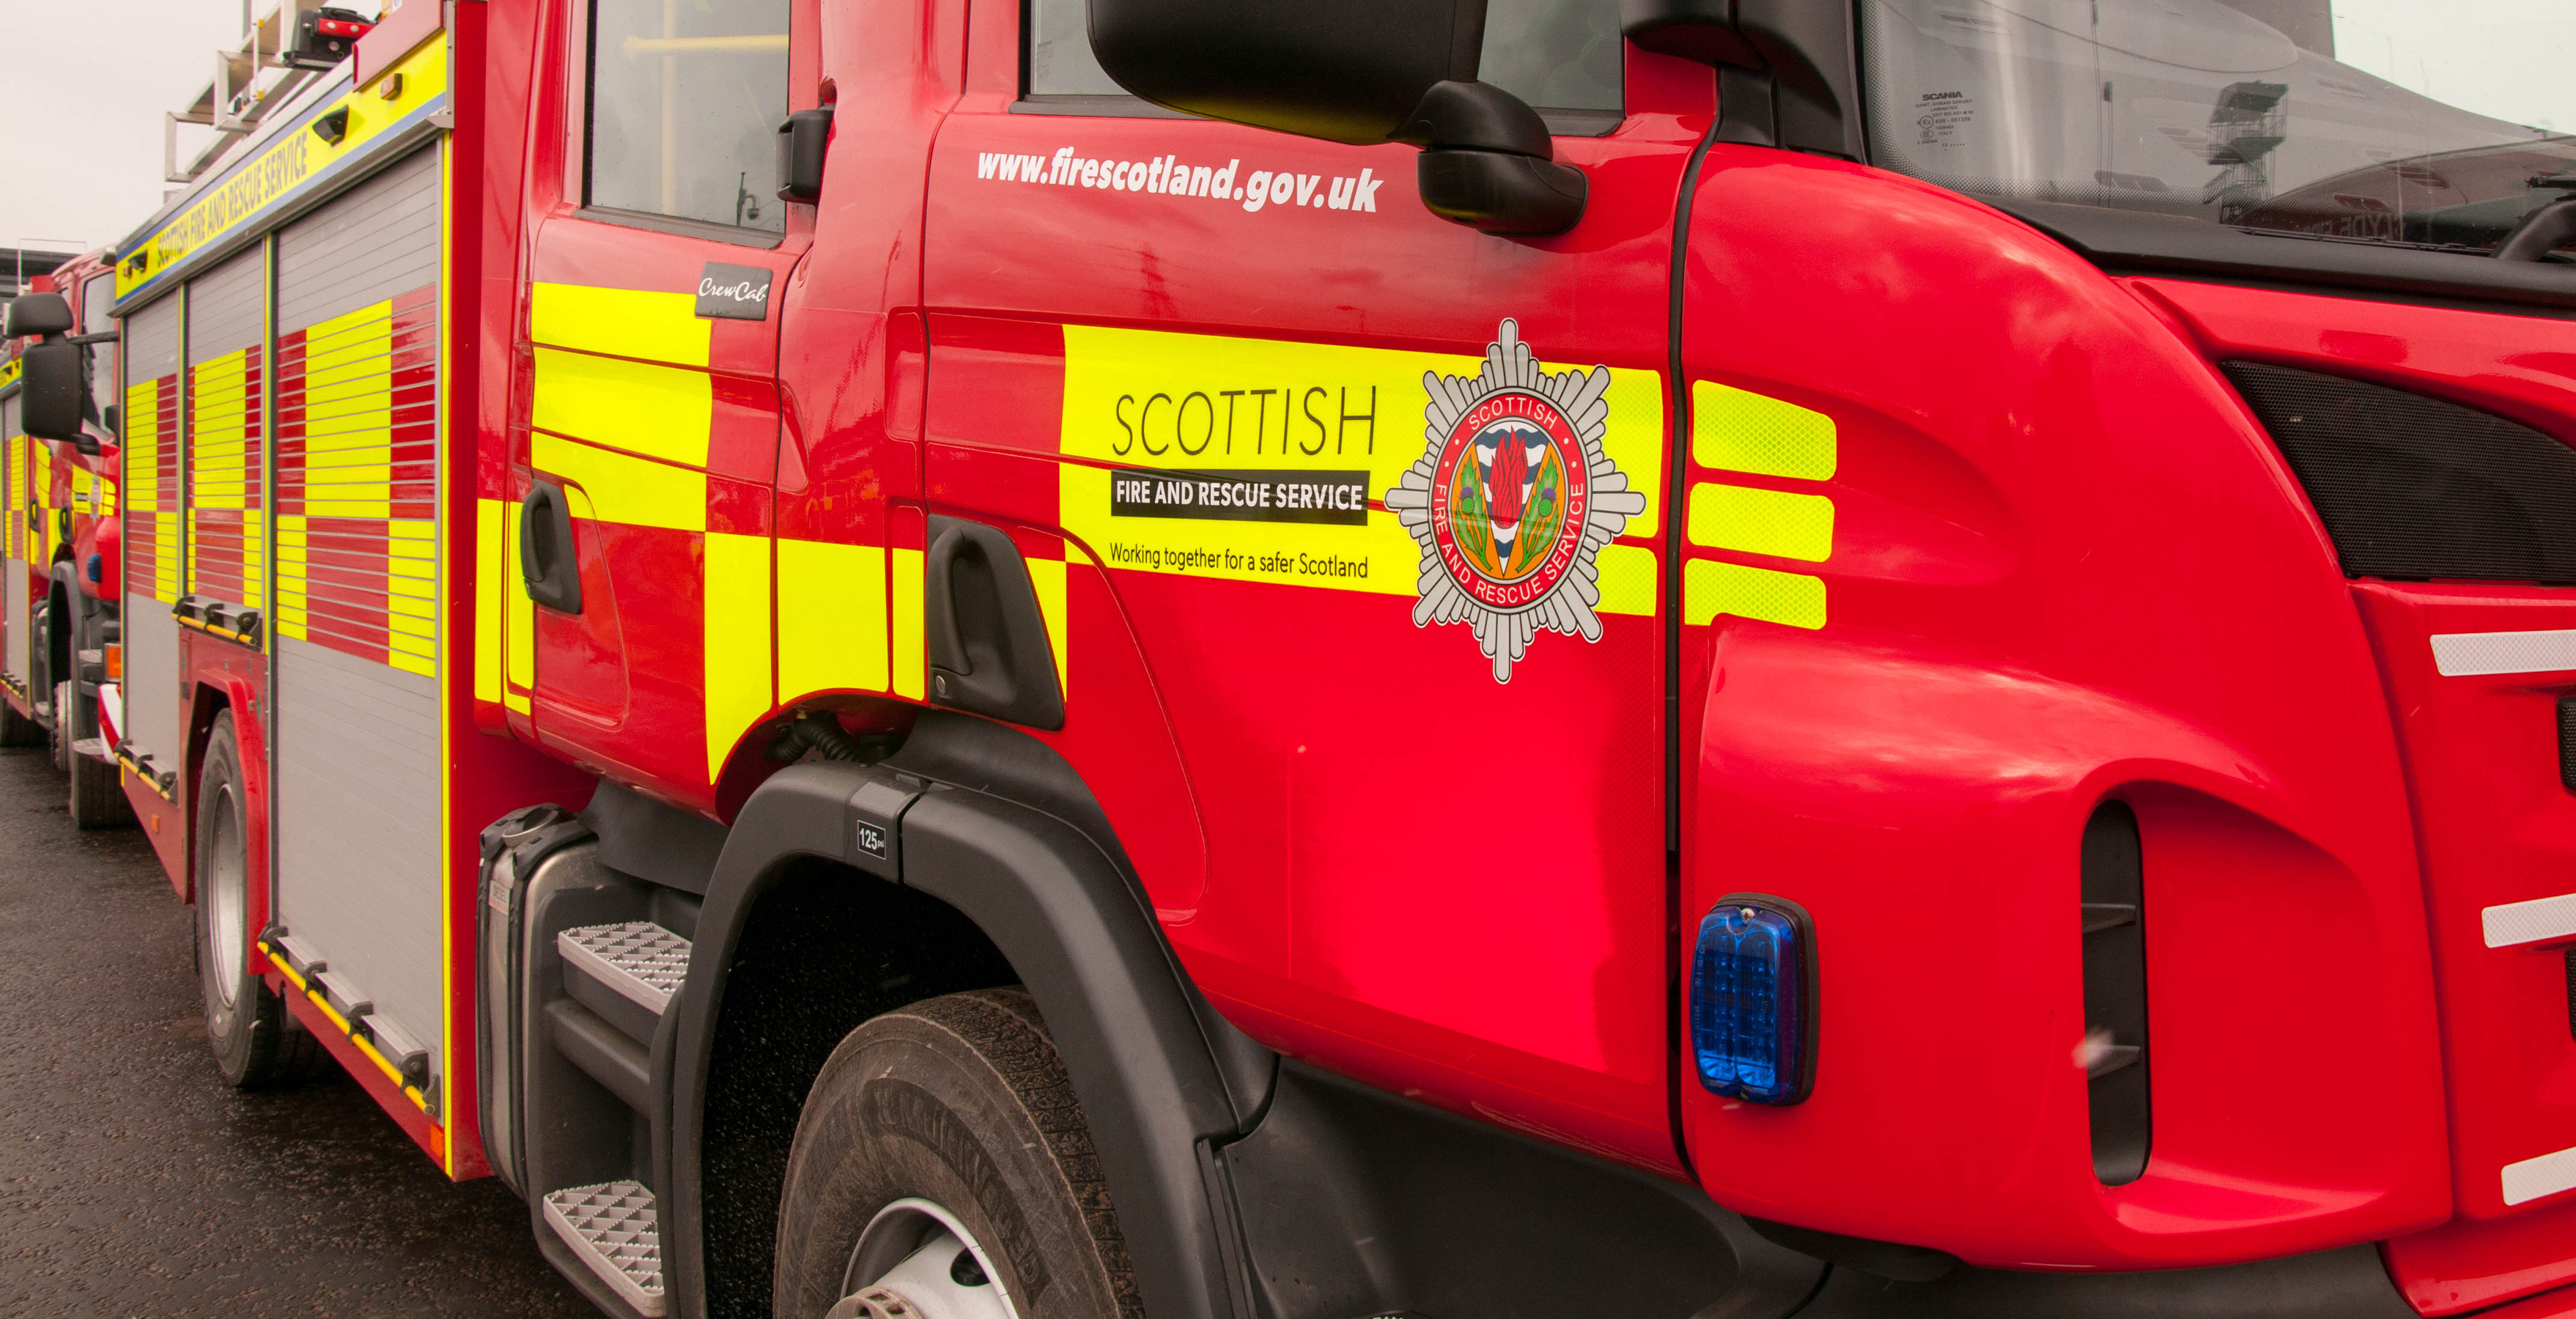 Crews respond to house fire in Argyll and Bute